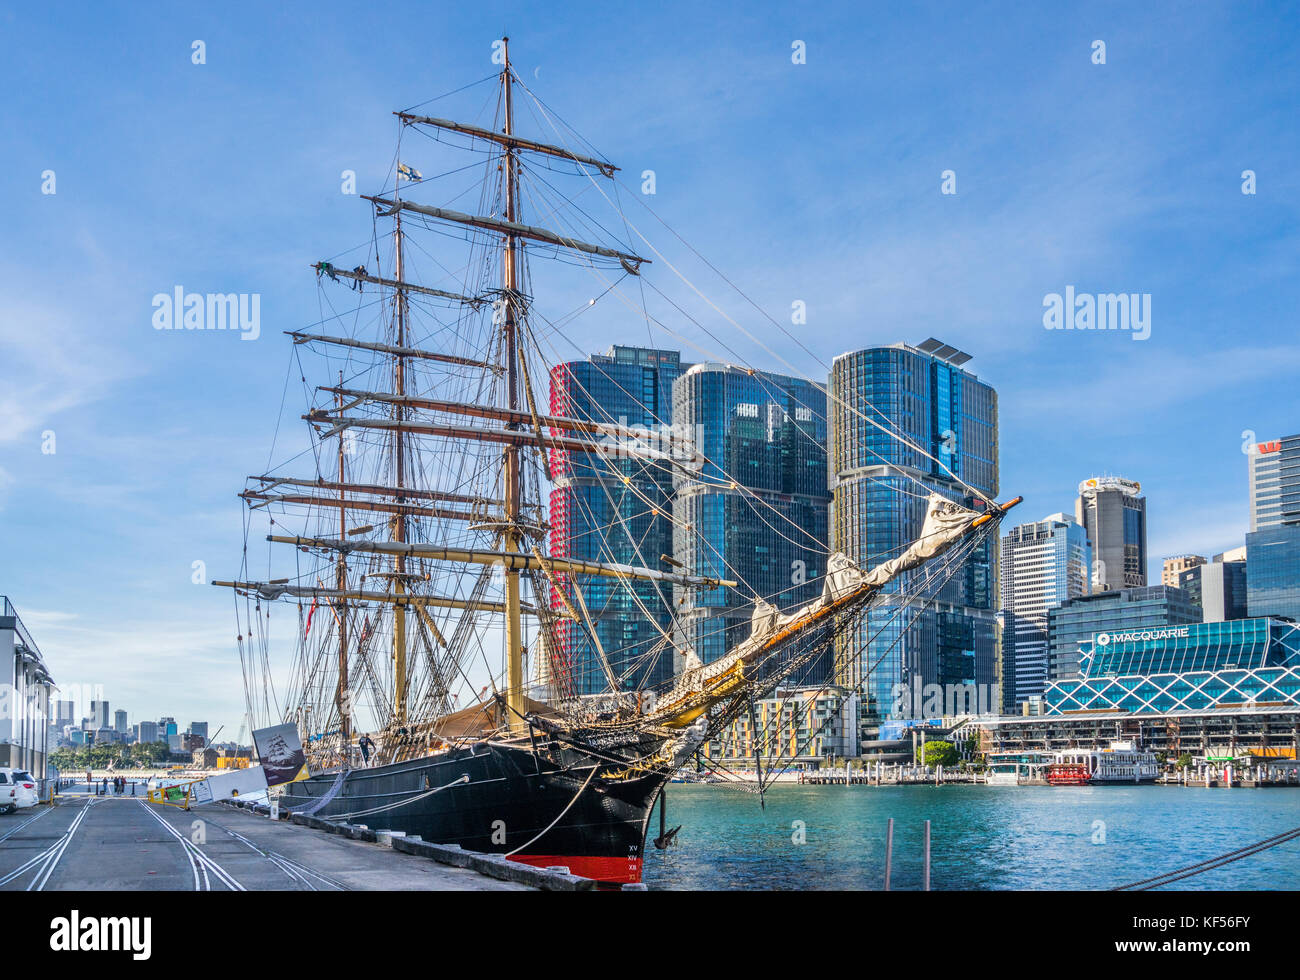 Australia, New South Wales, Sydney, Darling Harbour, Wharf 7, Maritime Heritage Centre, view of the iron-hulled - Stock Image